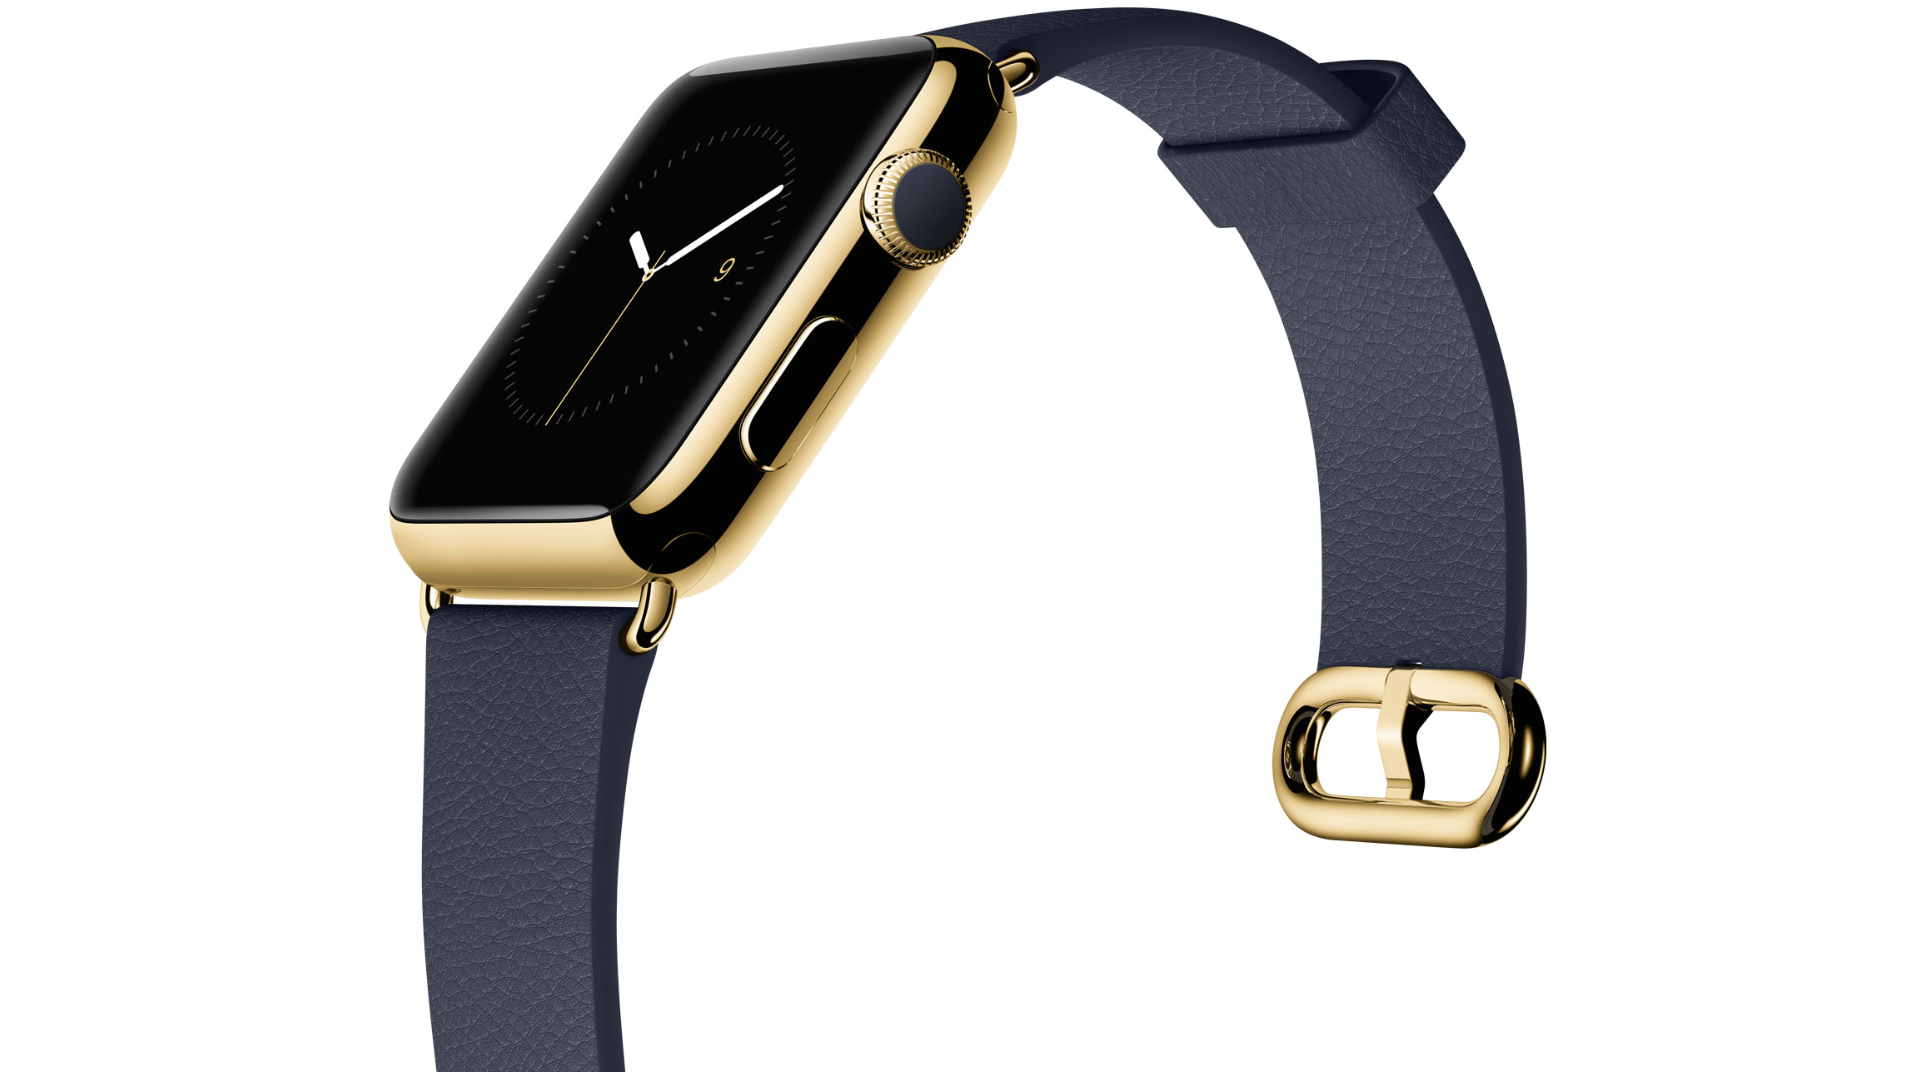 AppleWatchEditionHeader